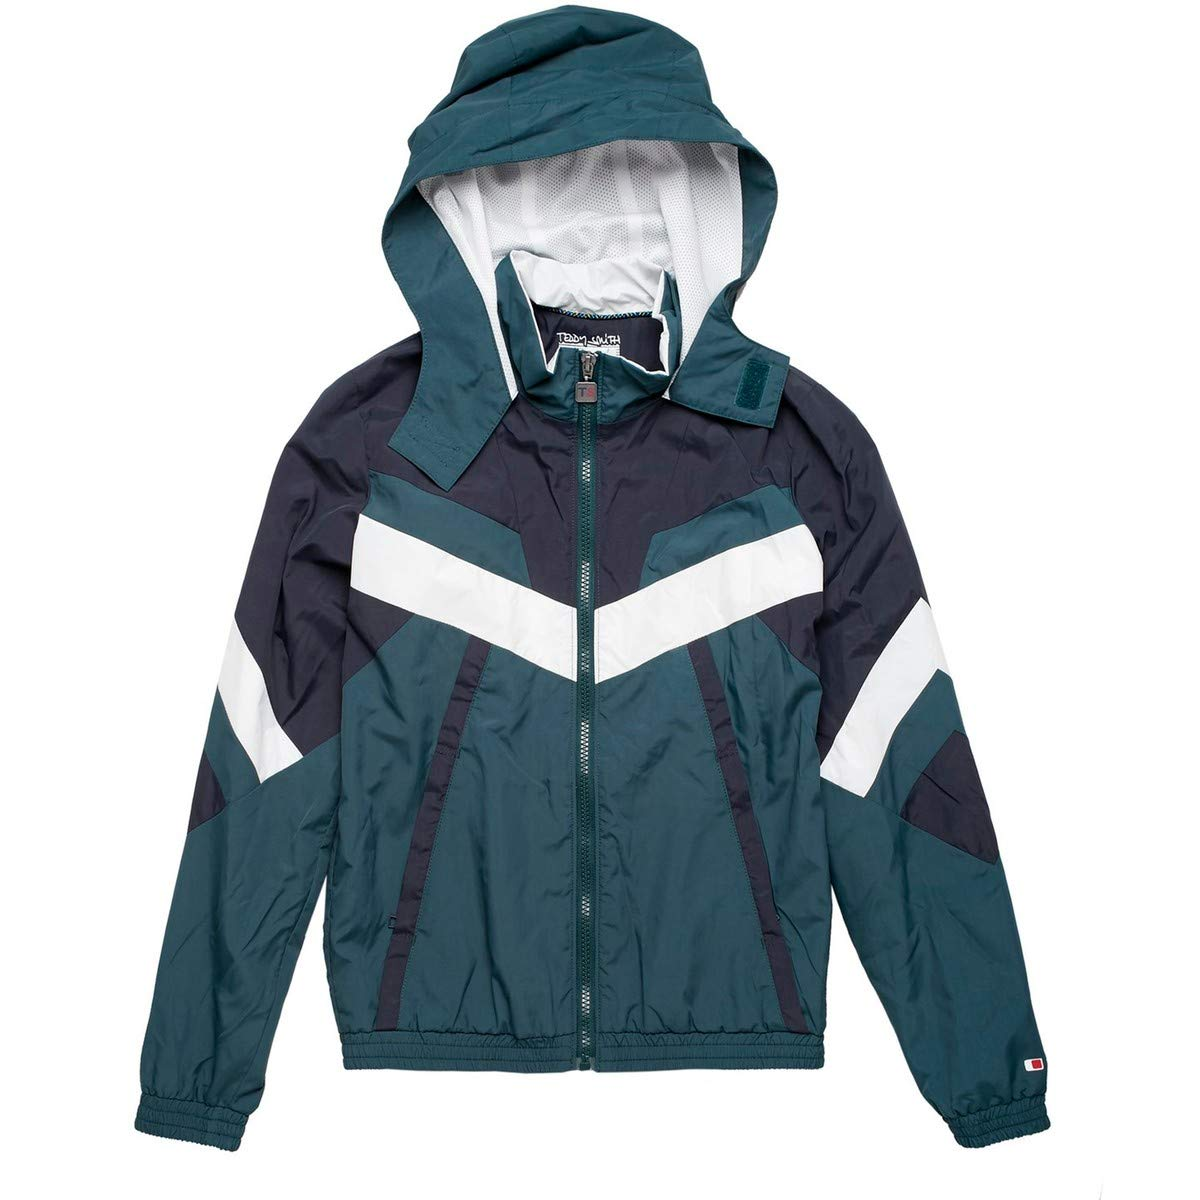 Teddy Smith Hooded Windcheater, 10-16 Years Green Size 10 Years (138 cm)